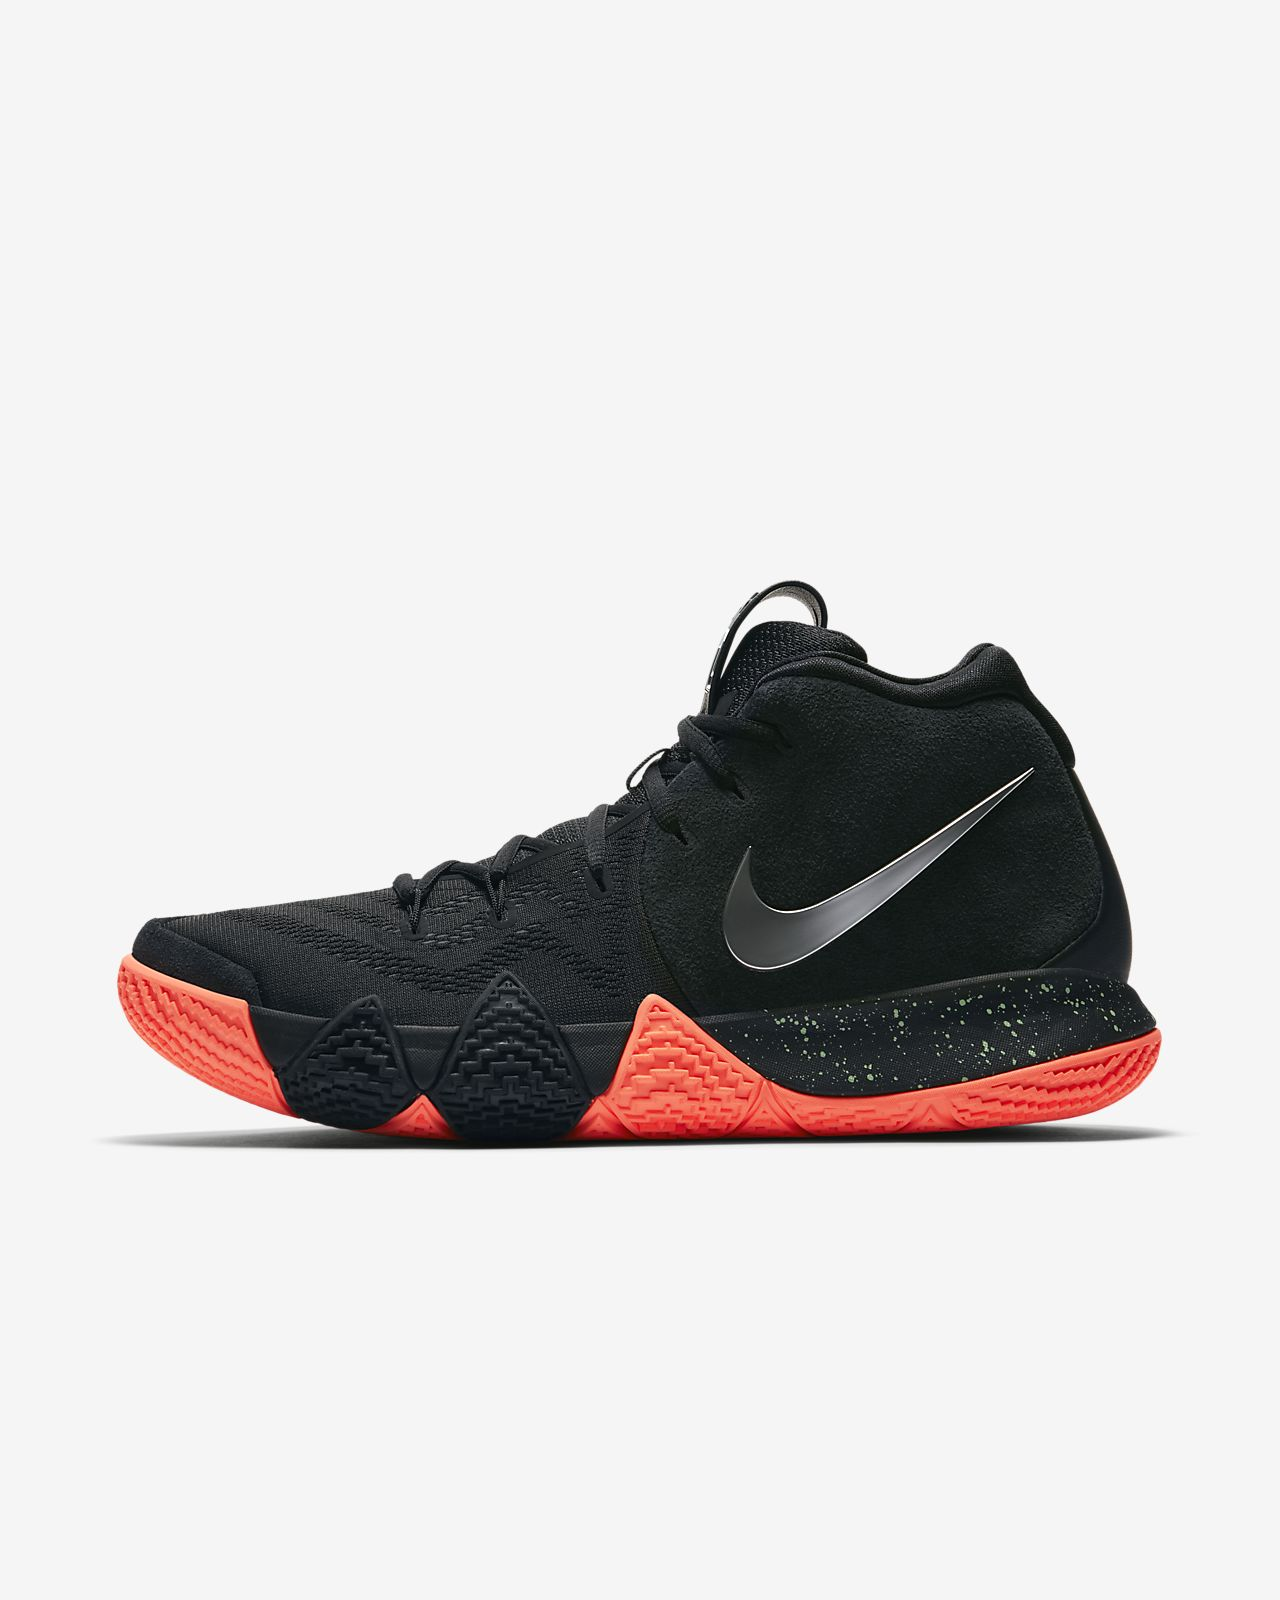 buy popular acf9d d1eb9 Basketball Shoe. Kyrie 4